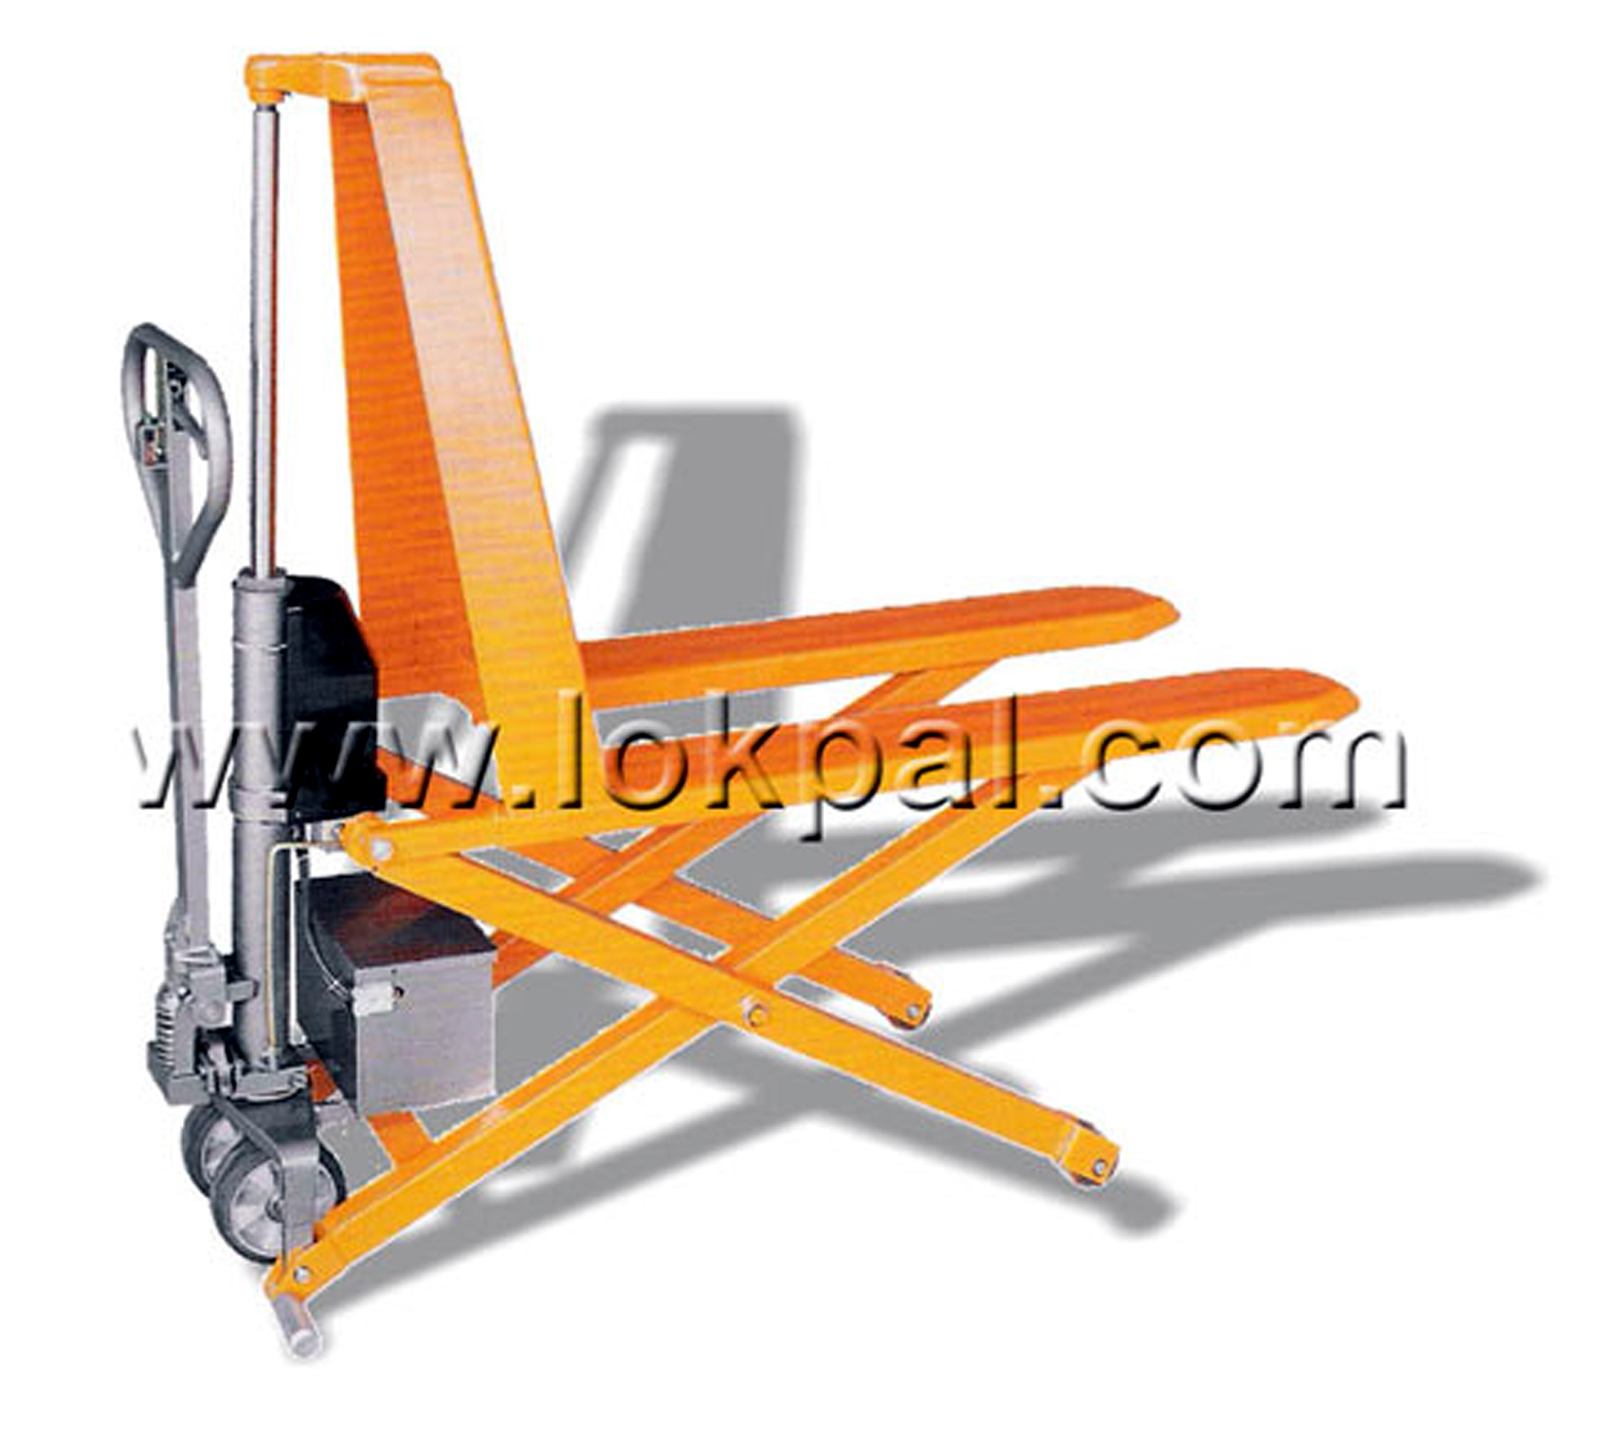 Electric High Lift, Electric High Lift Distributor, Electric High Lift Manufacturer, Pallet Truck Supplier, Wholesaler, Delhi NCR, Noida, India